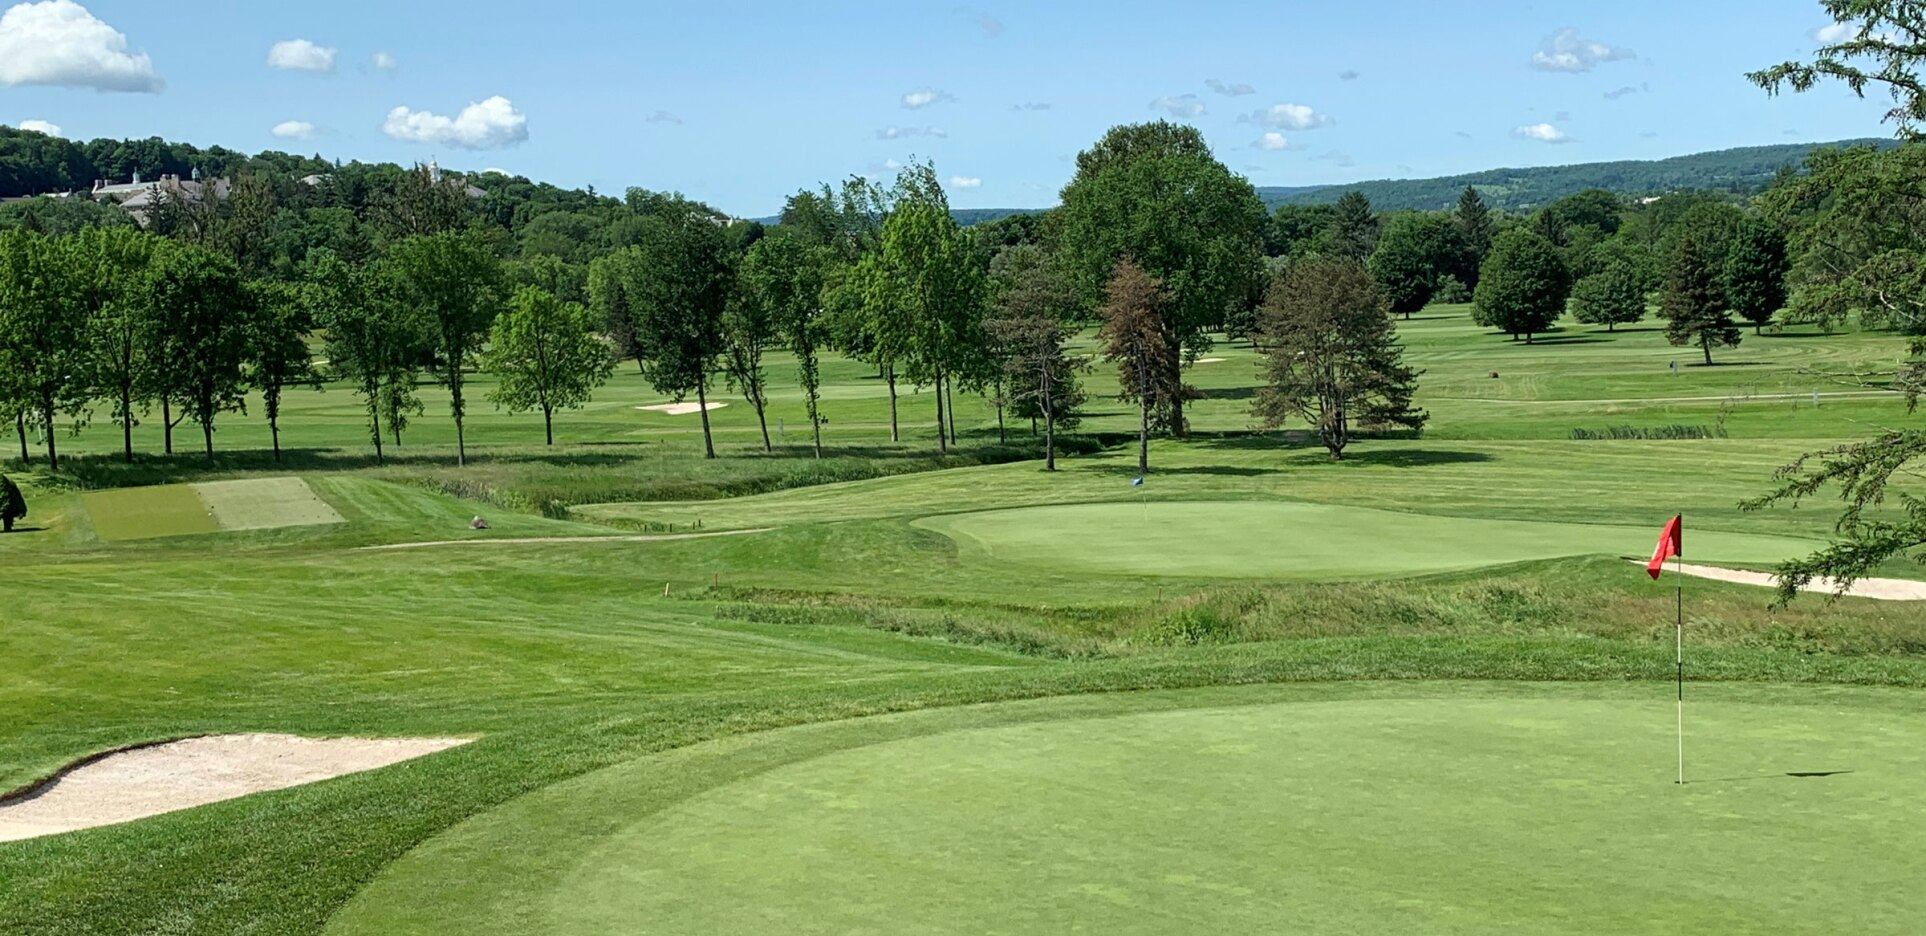 Seven Oaks Golf Club at Colgate University, Top College Golf Course in Central New York